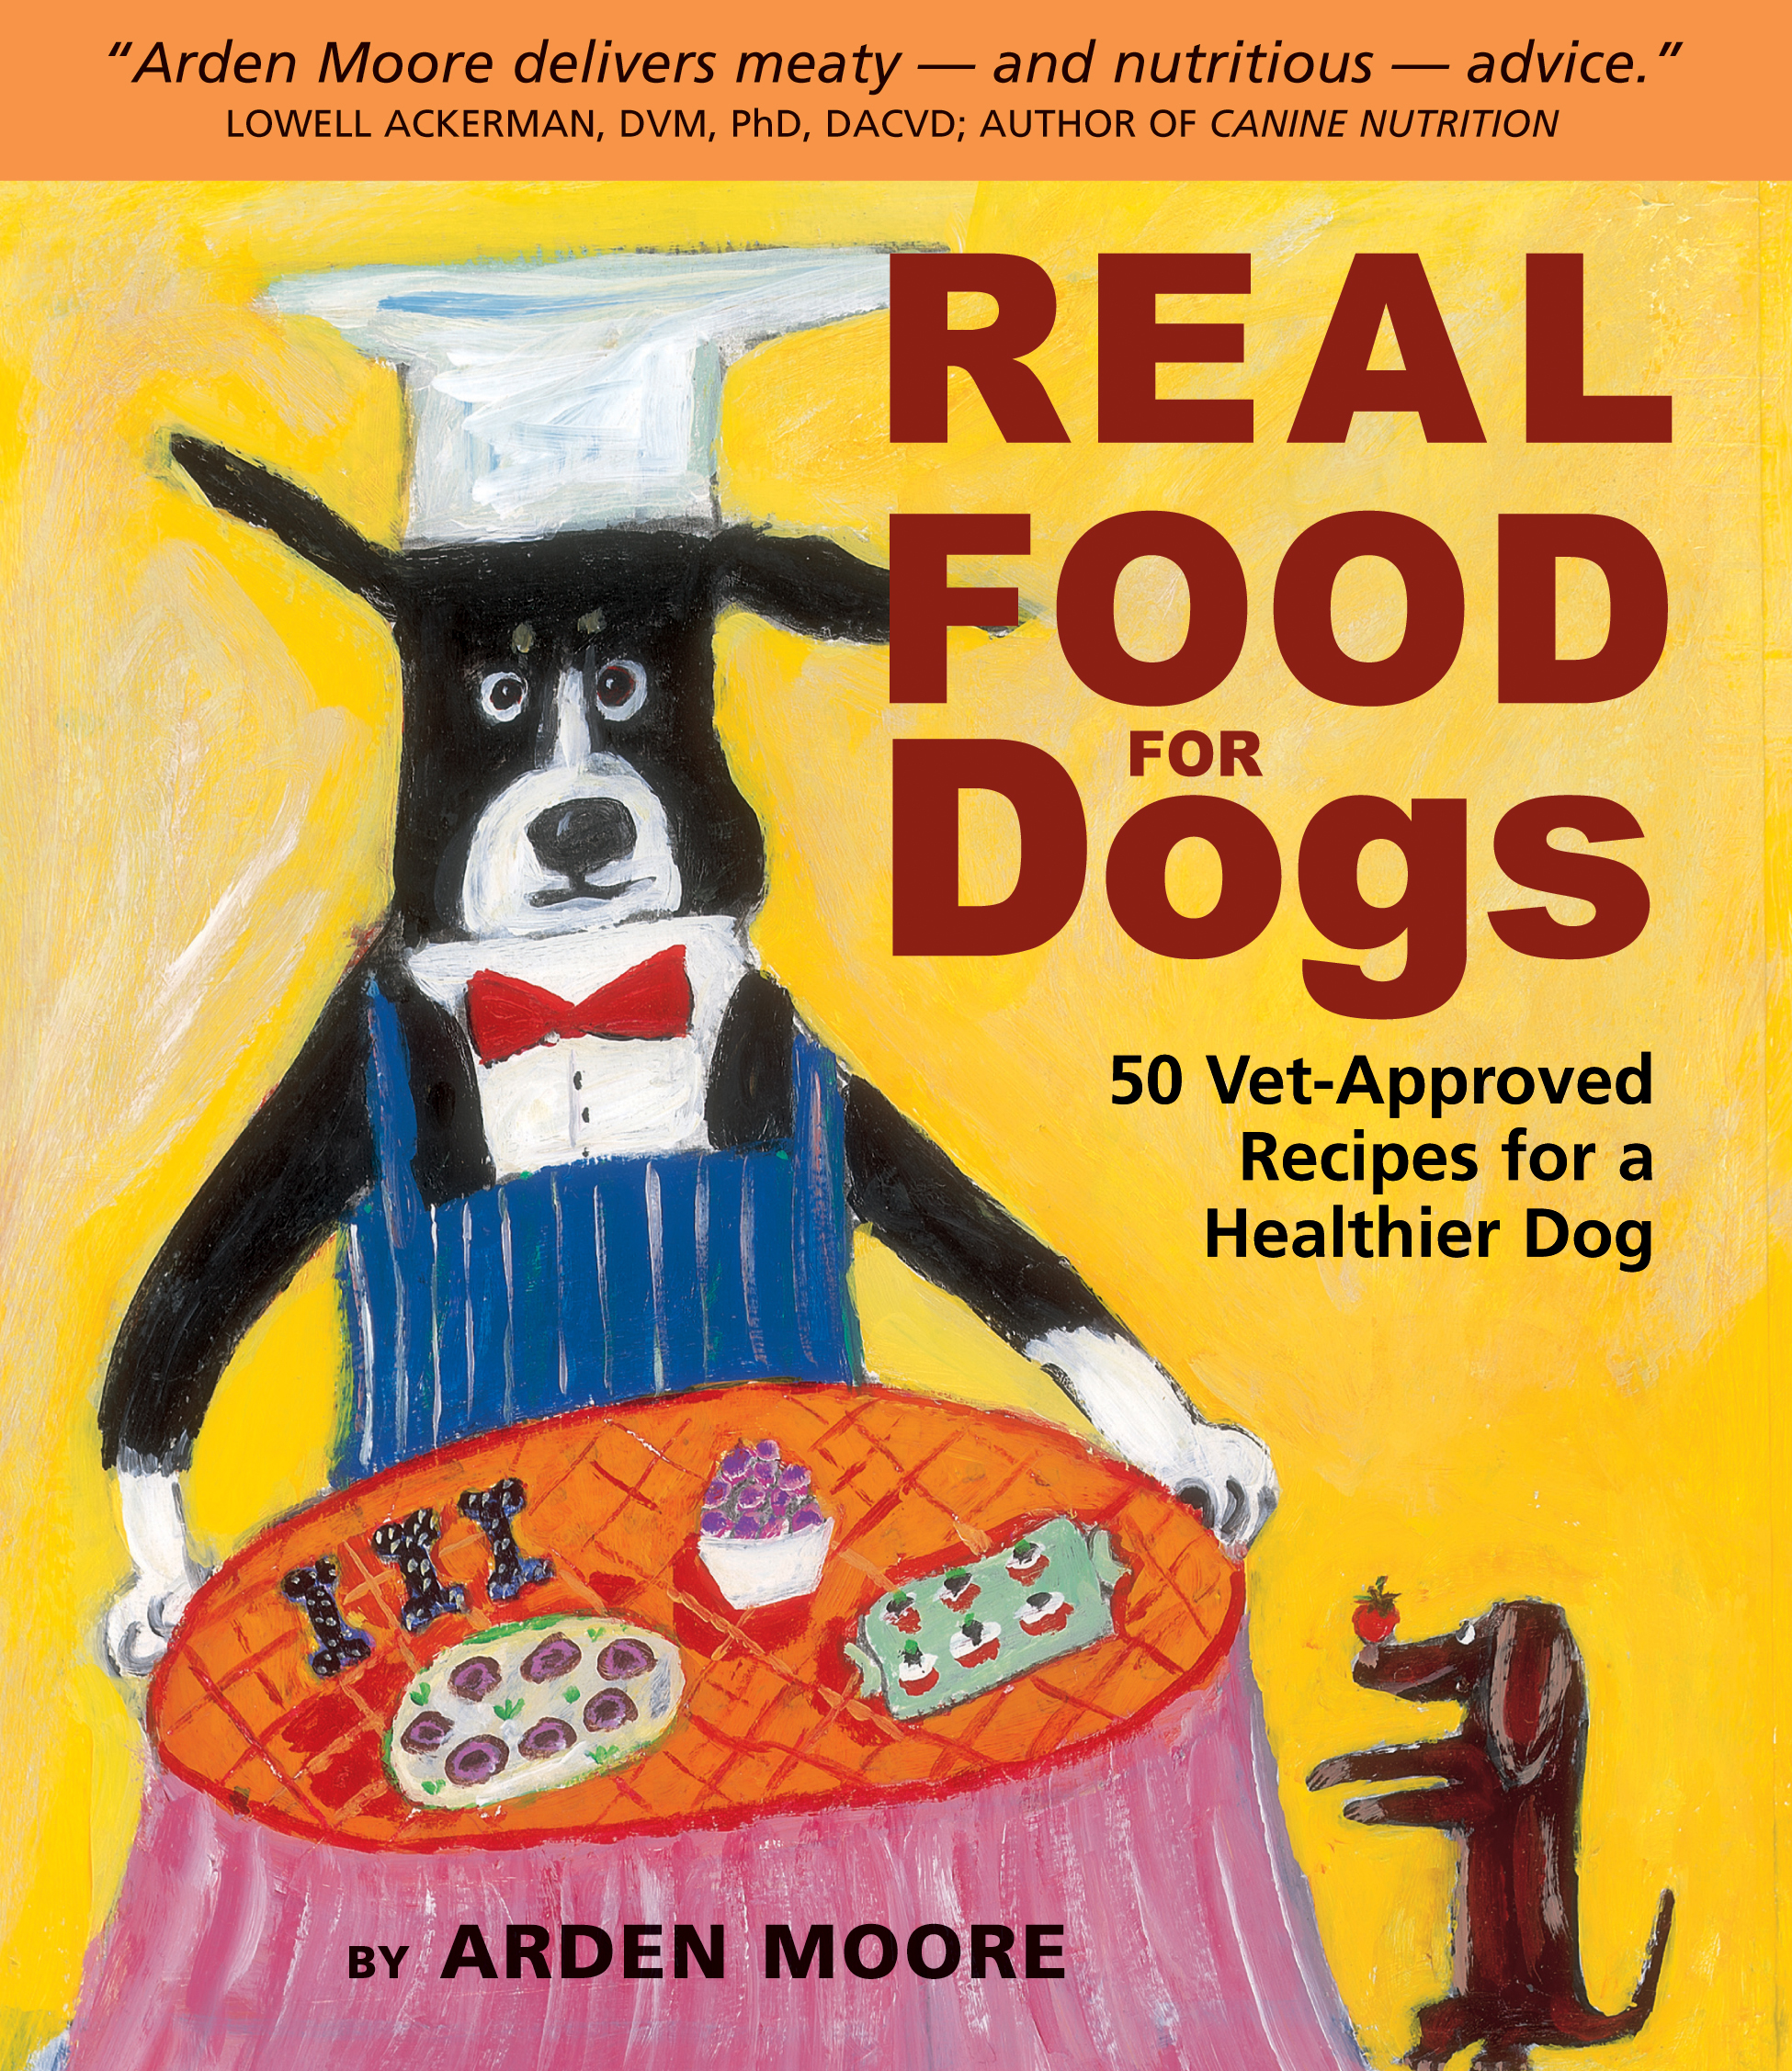 Real Food for Dogs 50 Vet-Approved Recipes for a Healthier Dog - Arden Moore